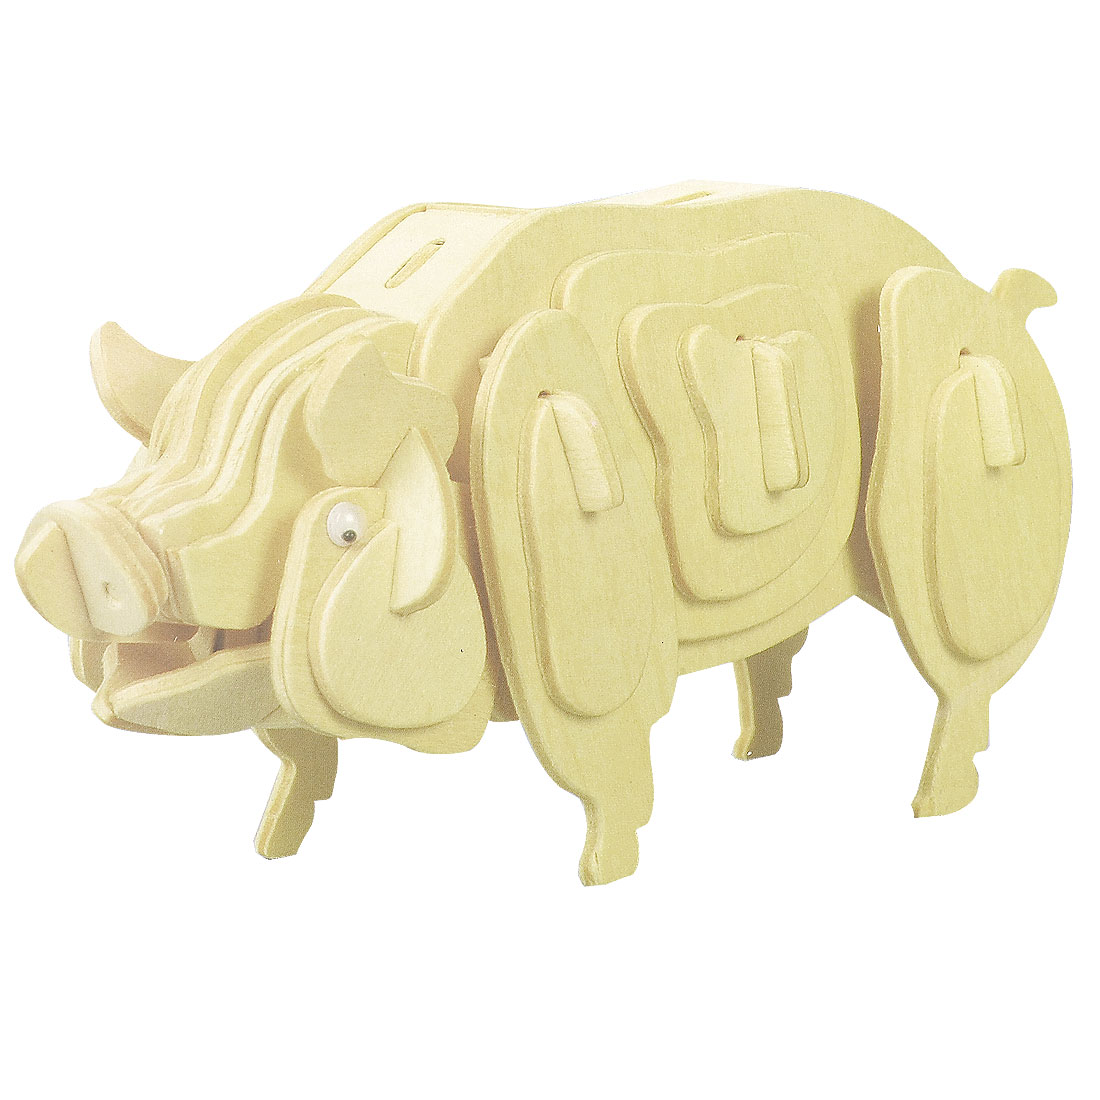 Kids DIY 3D Pig Wooden Assembly Puzzle Toy Woodcraft Construction Kit